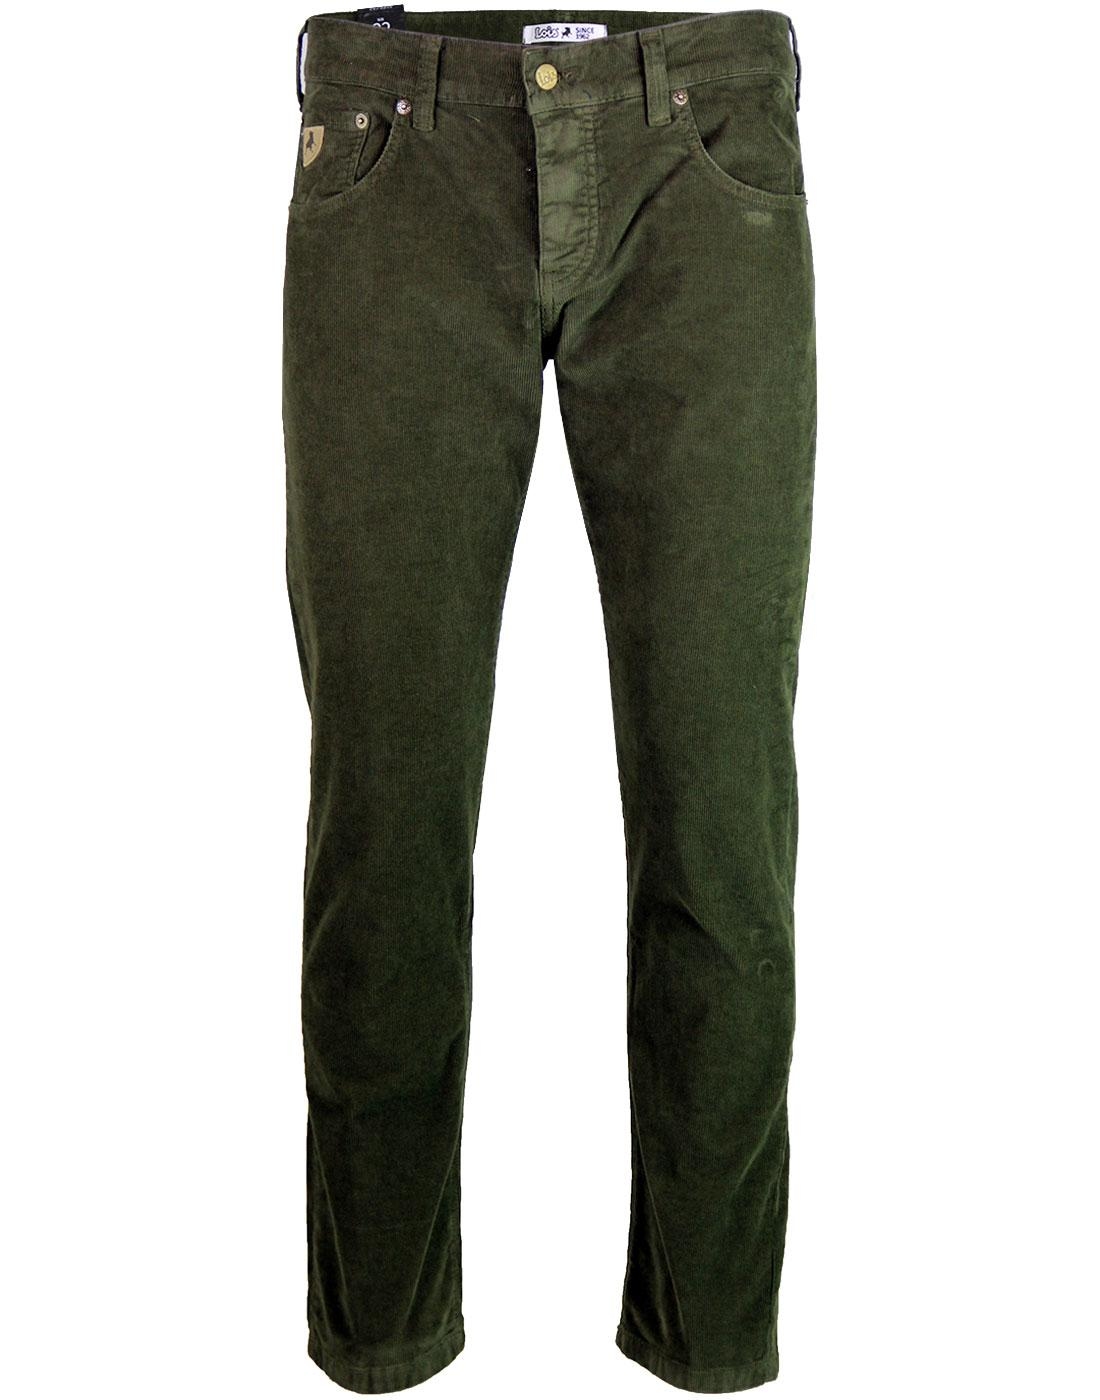 Sierra LOIS Retro 80s Casuals Needle Cord Trousers